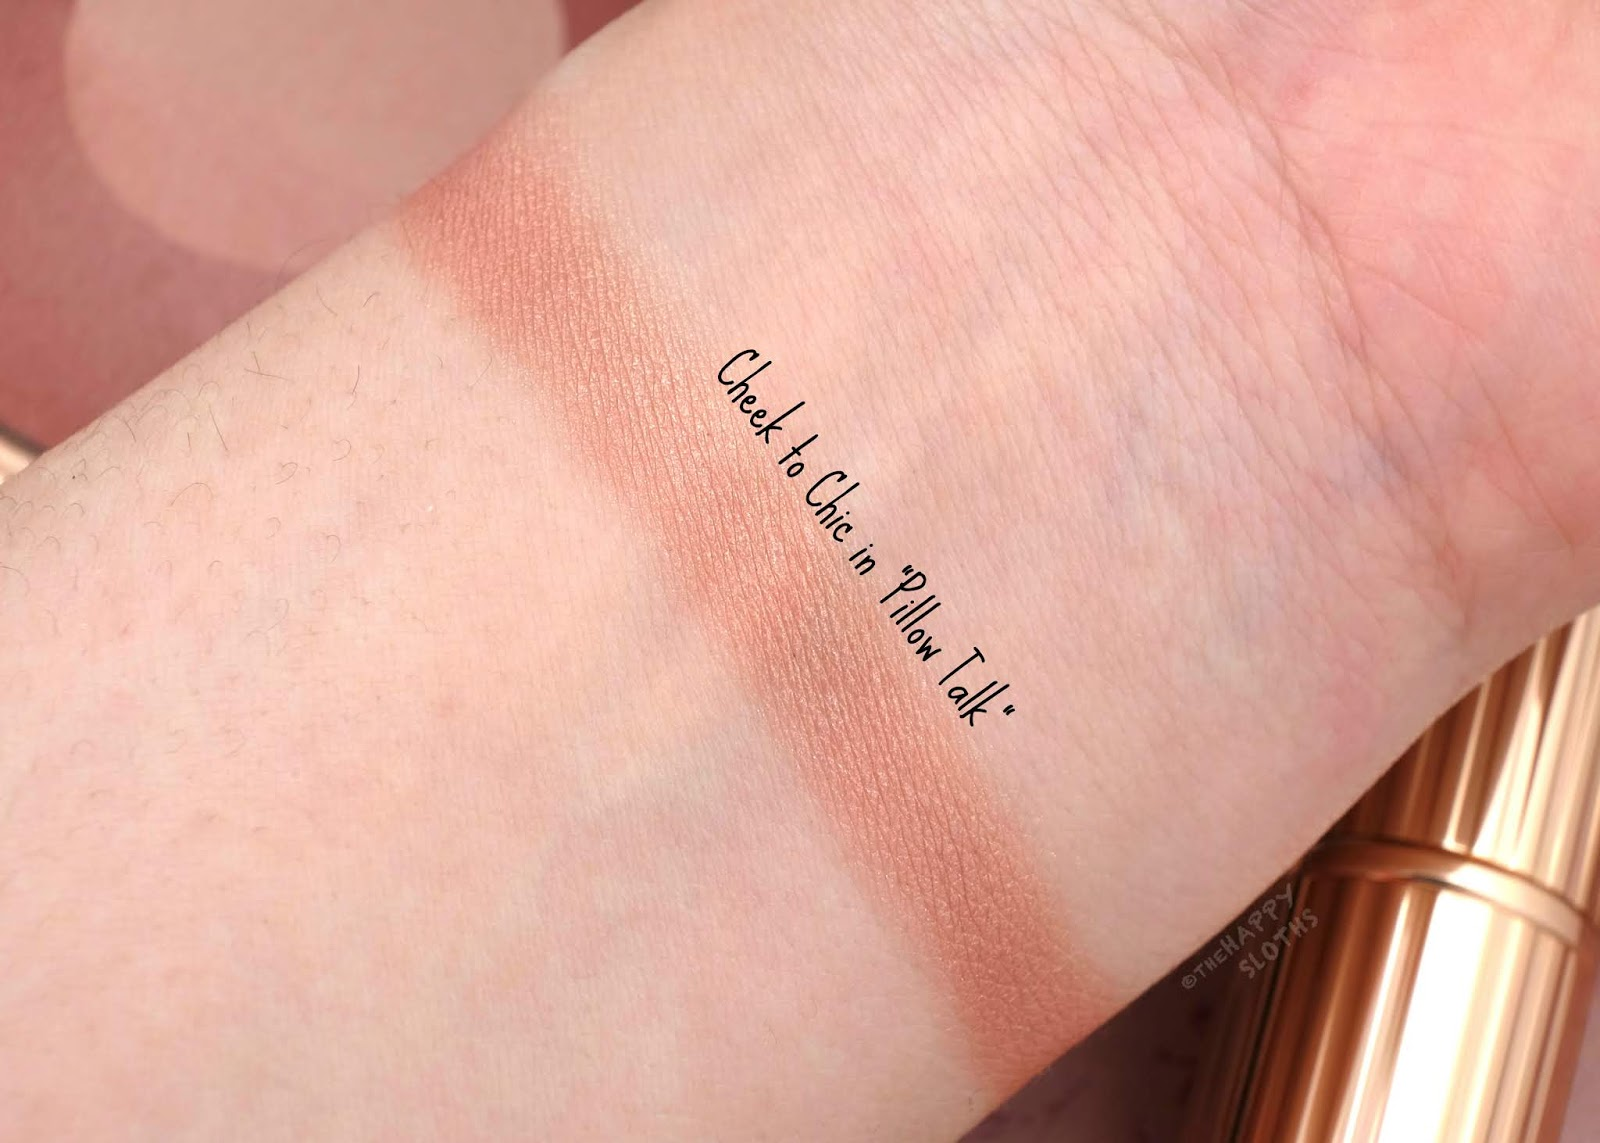 Charlotte Tilbury | Pillow Talk Cheek to Chic Blush: Review and Swatches